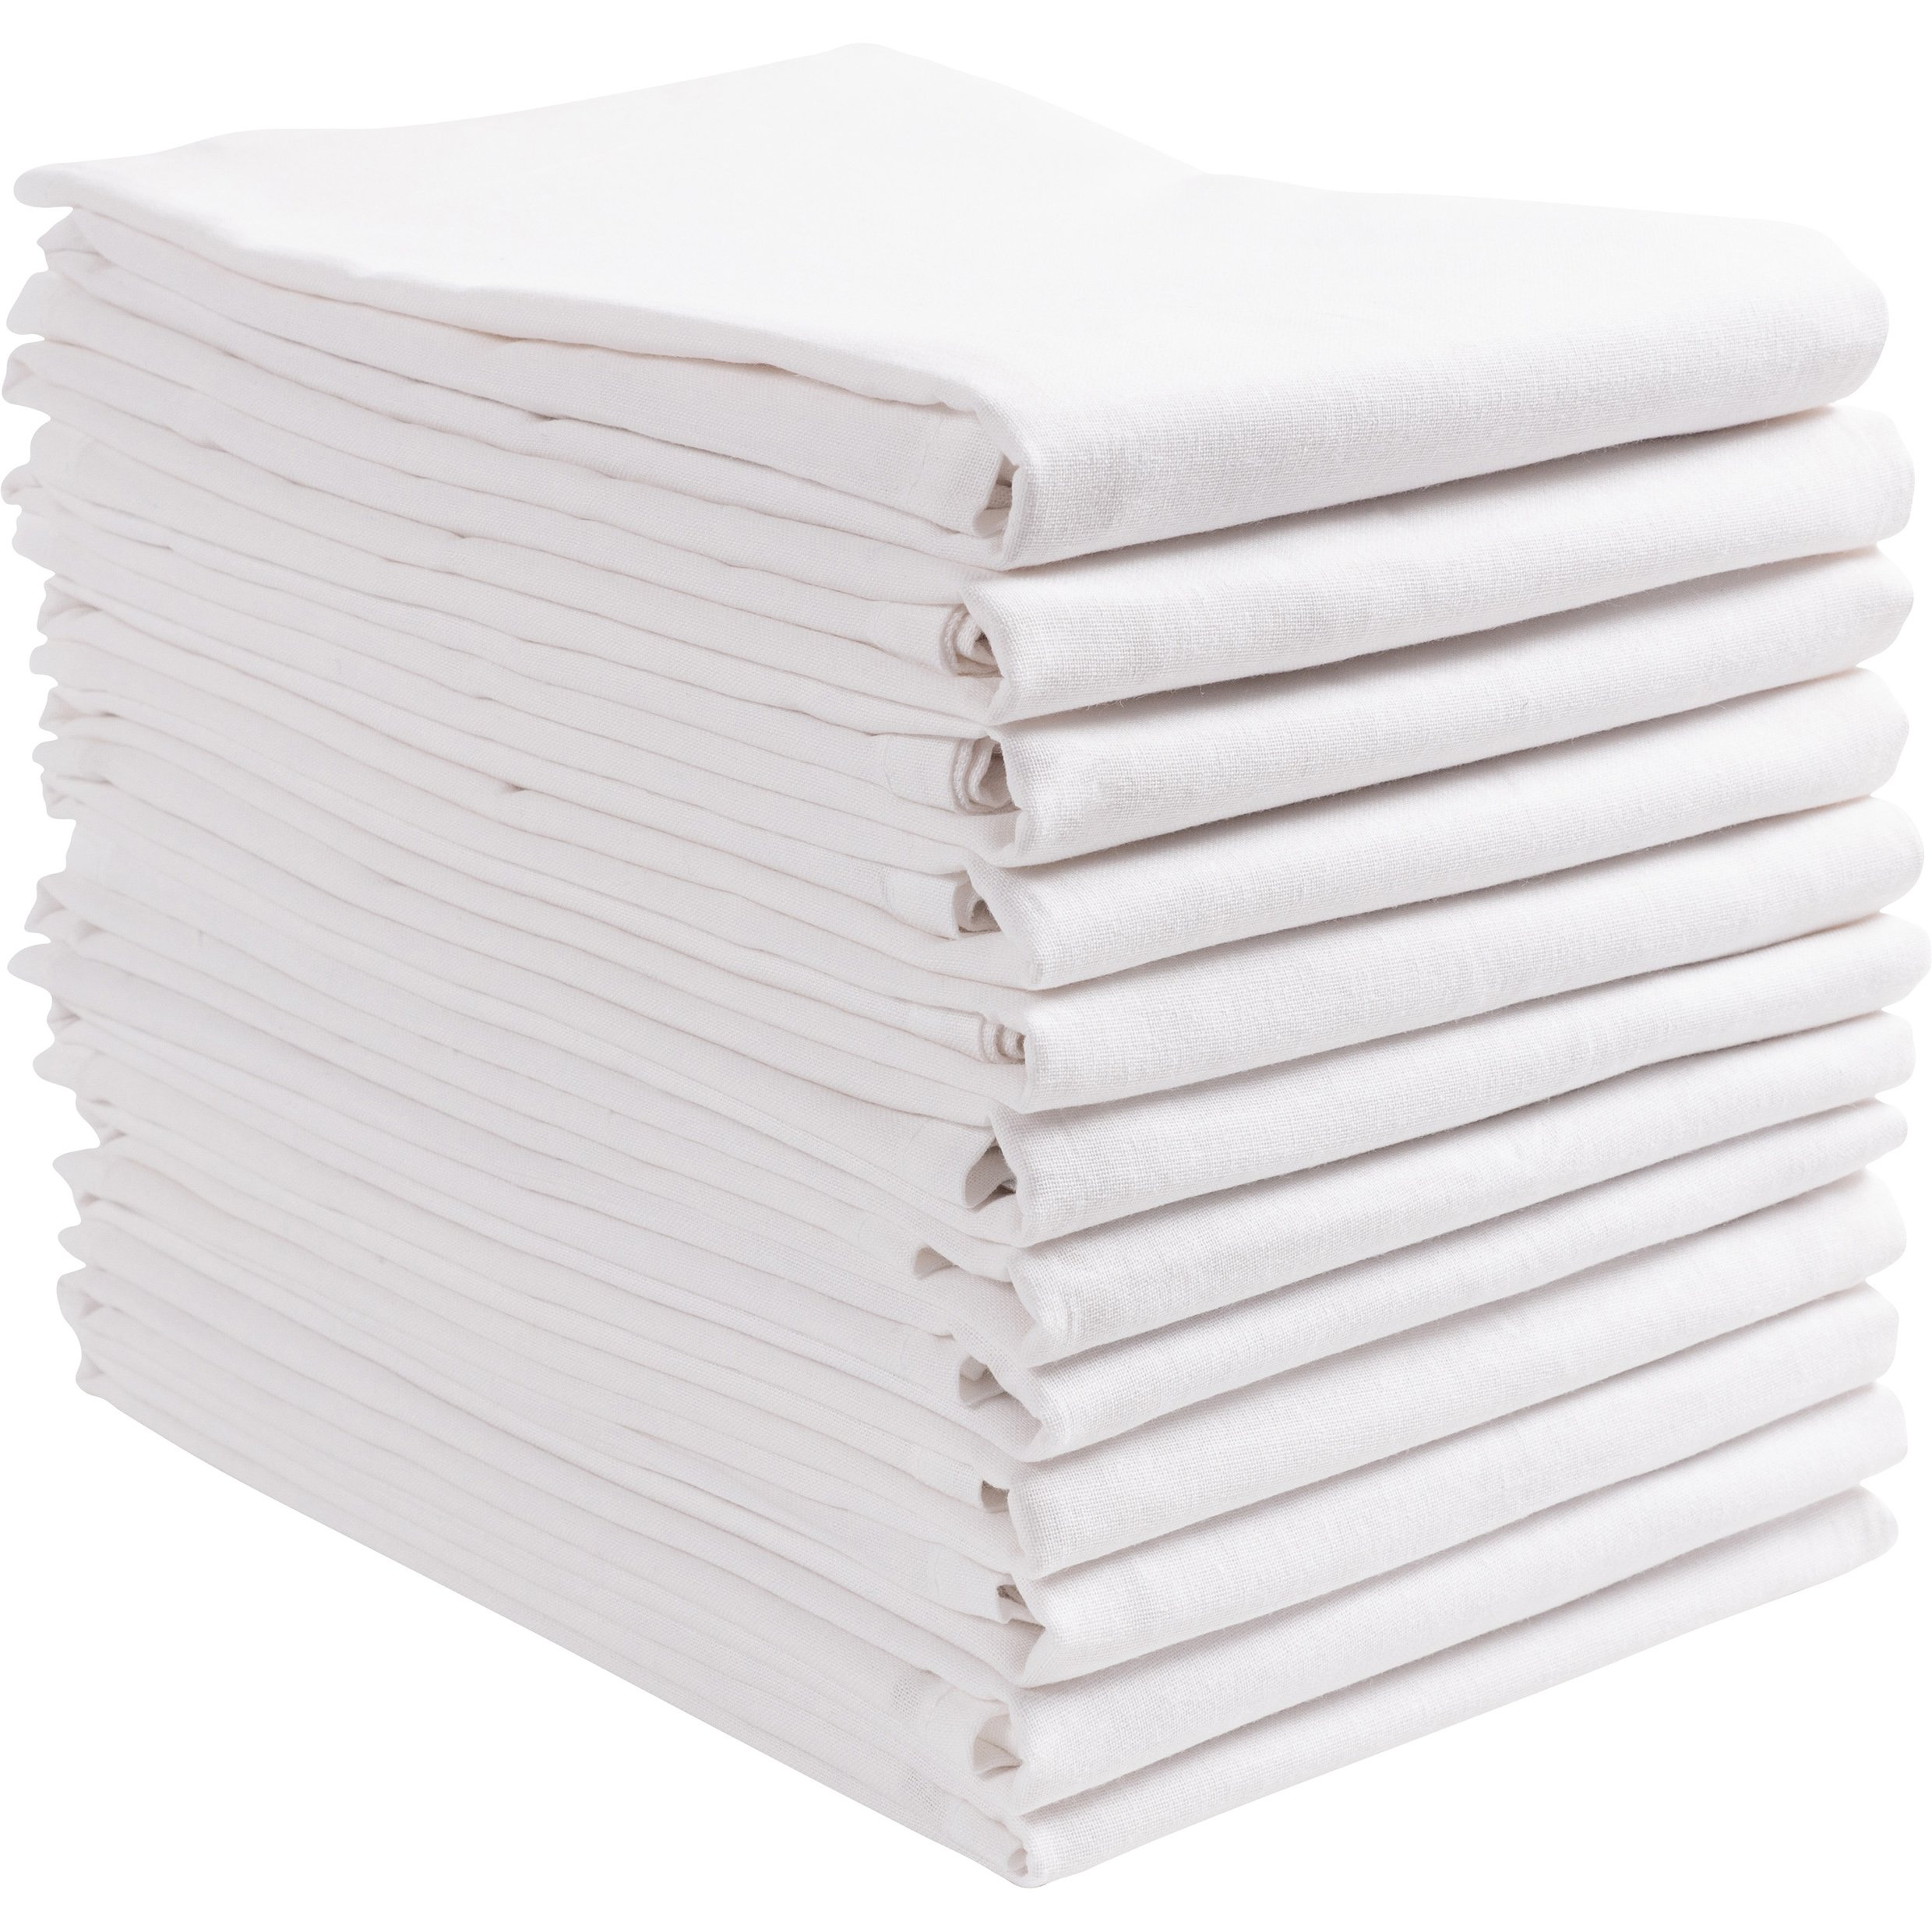 KAF Home Set of 12 White FLAT Flour Sack Embroidery/Craft Towels, 100-Percent Cotton, Absorbent, Extra Soft (20 x 30-Inches, FLAT)